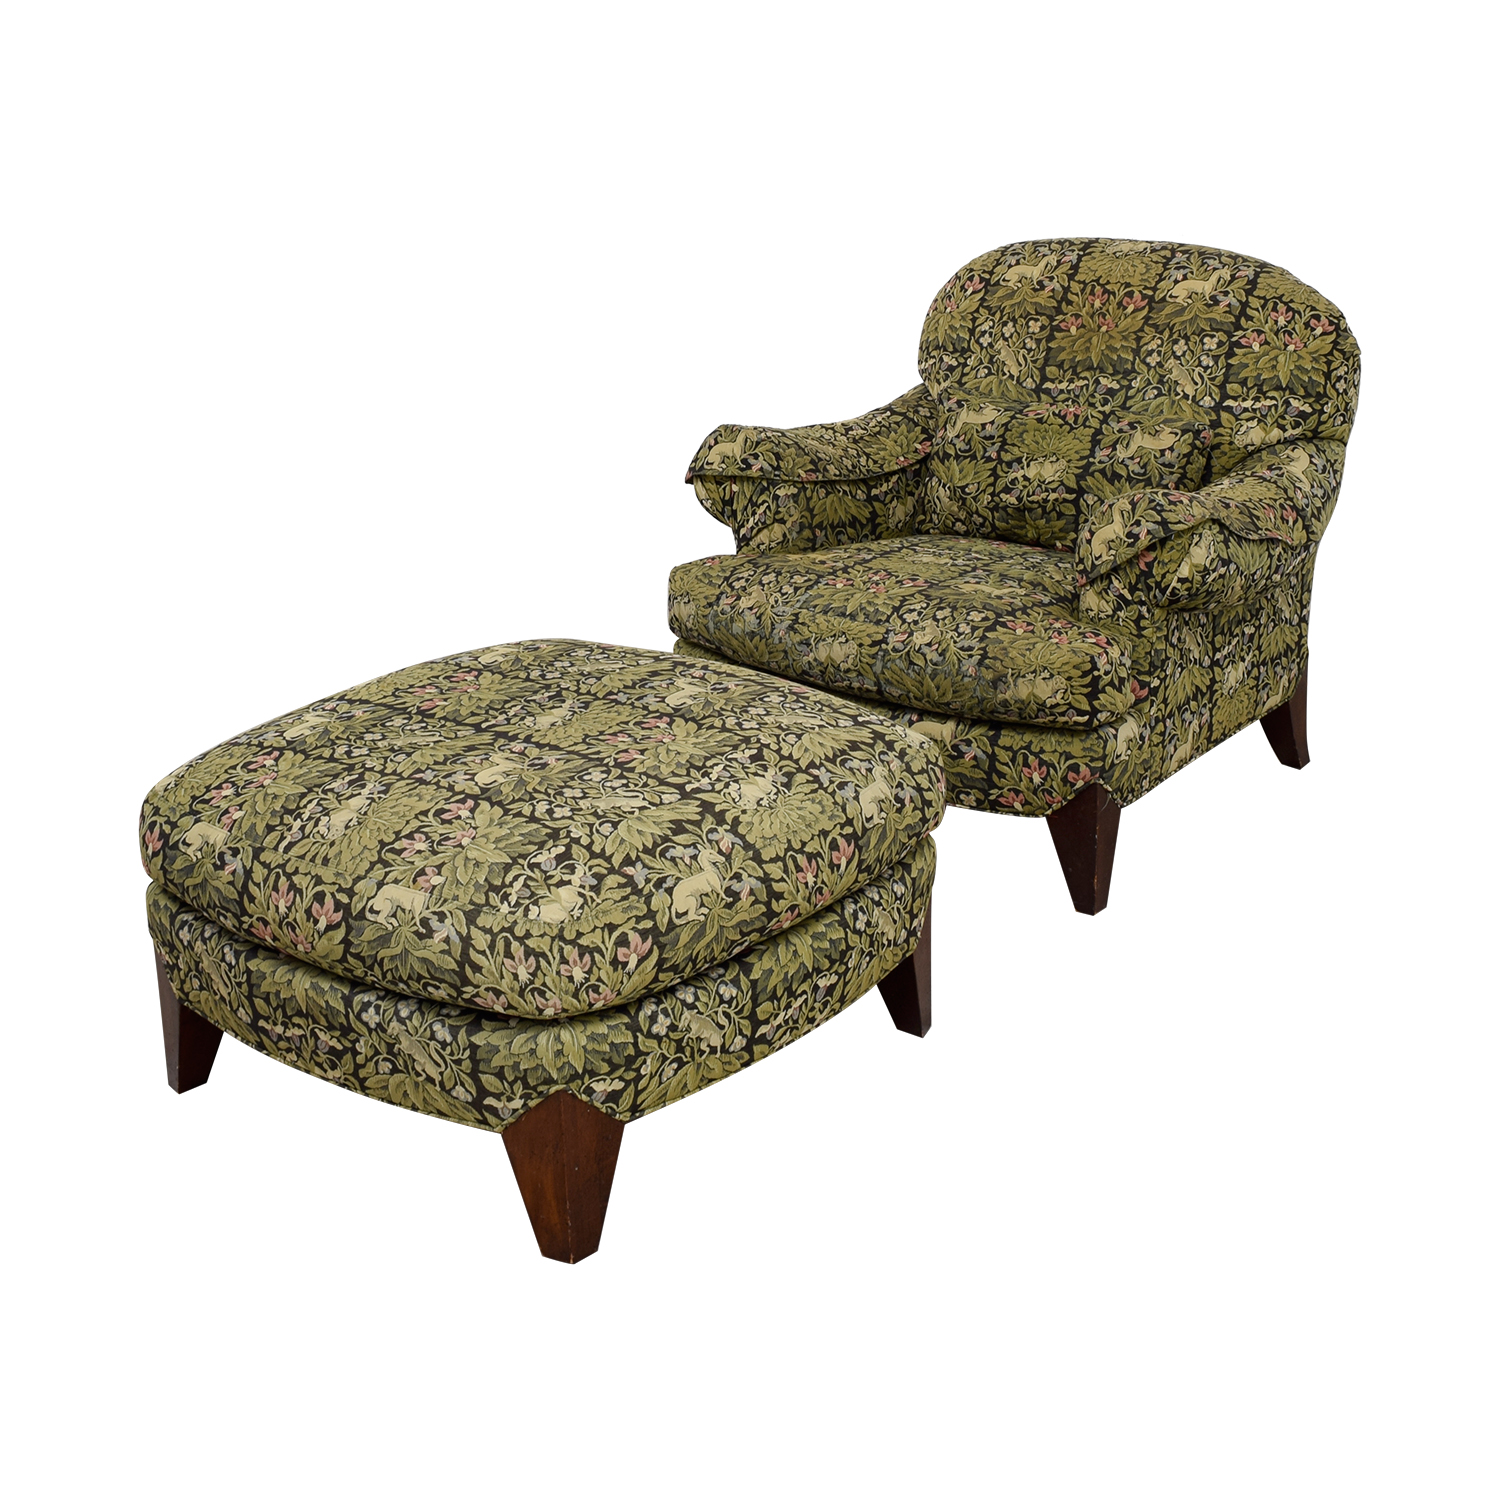 Henredon Upholstered Floral Chair and Ottoman Henredon